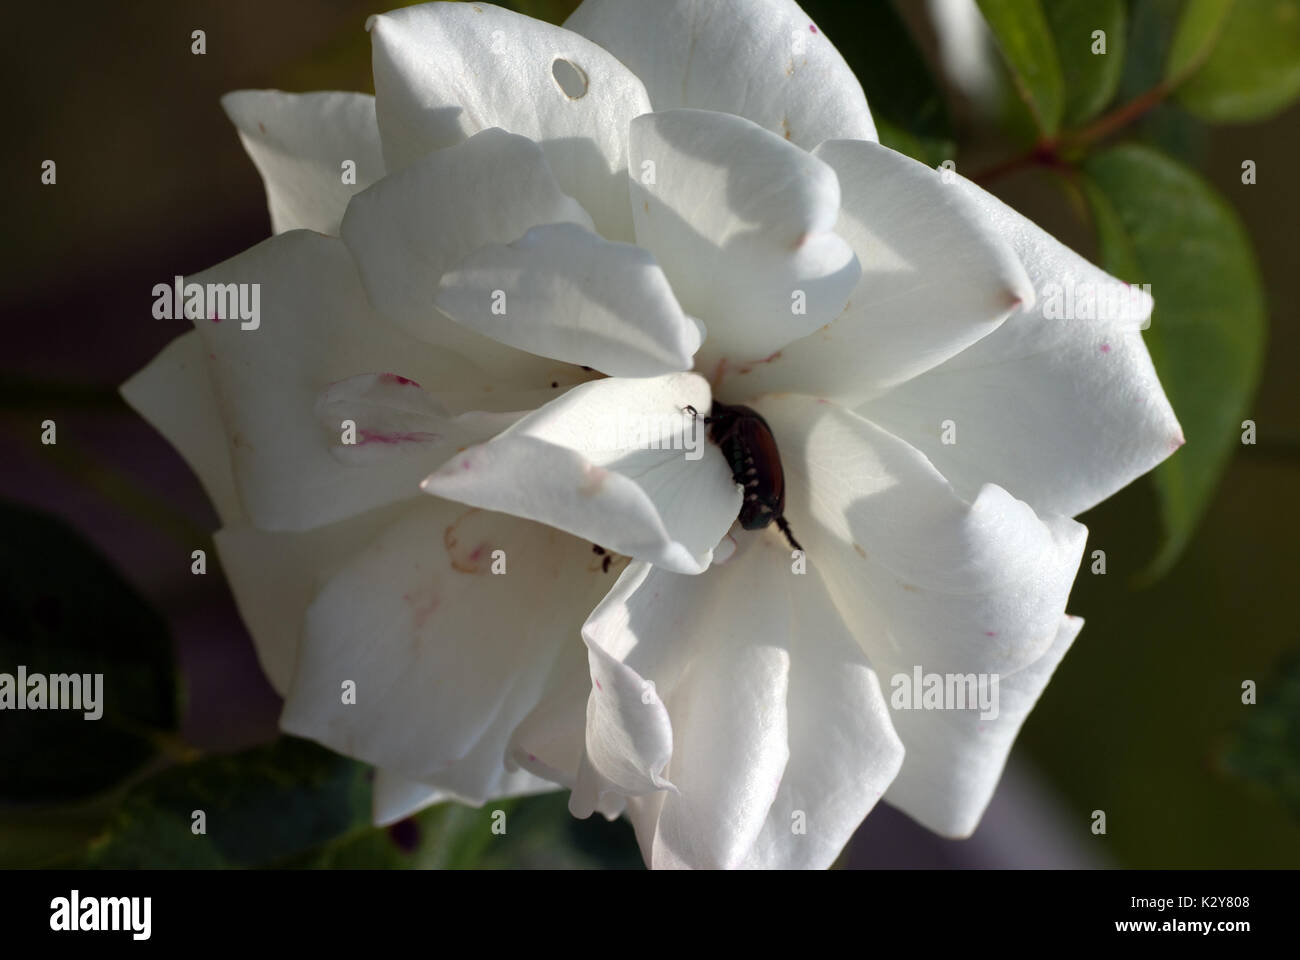 Japanese beetle eating a white rose in full bloom - Stock Image